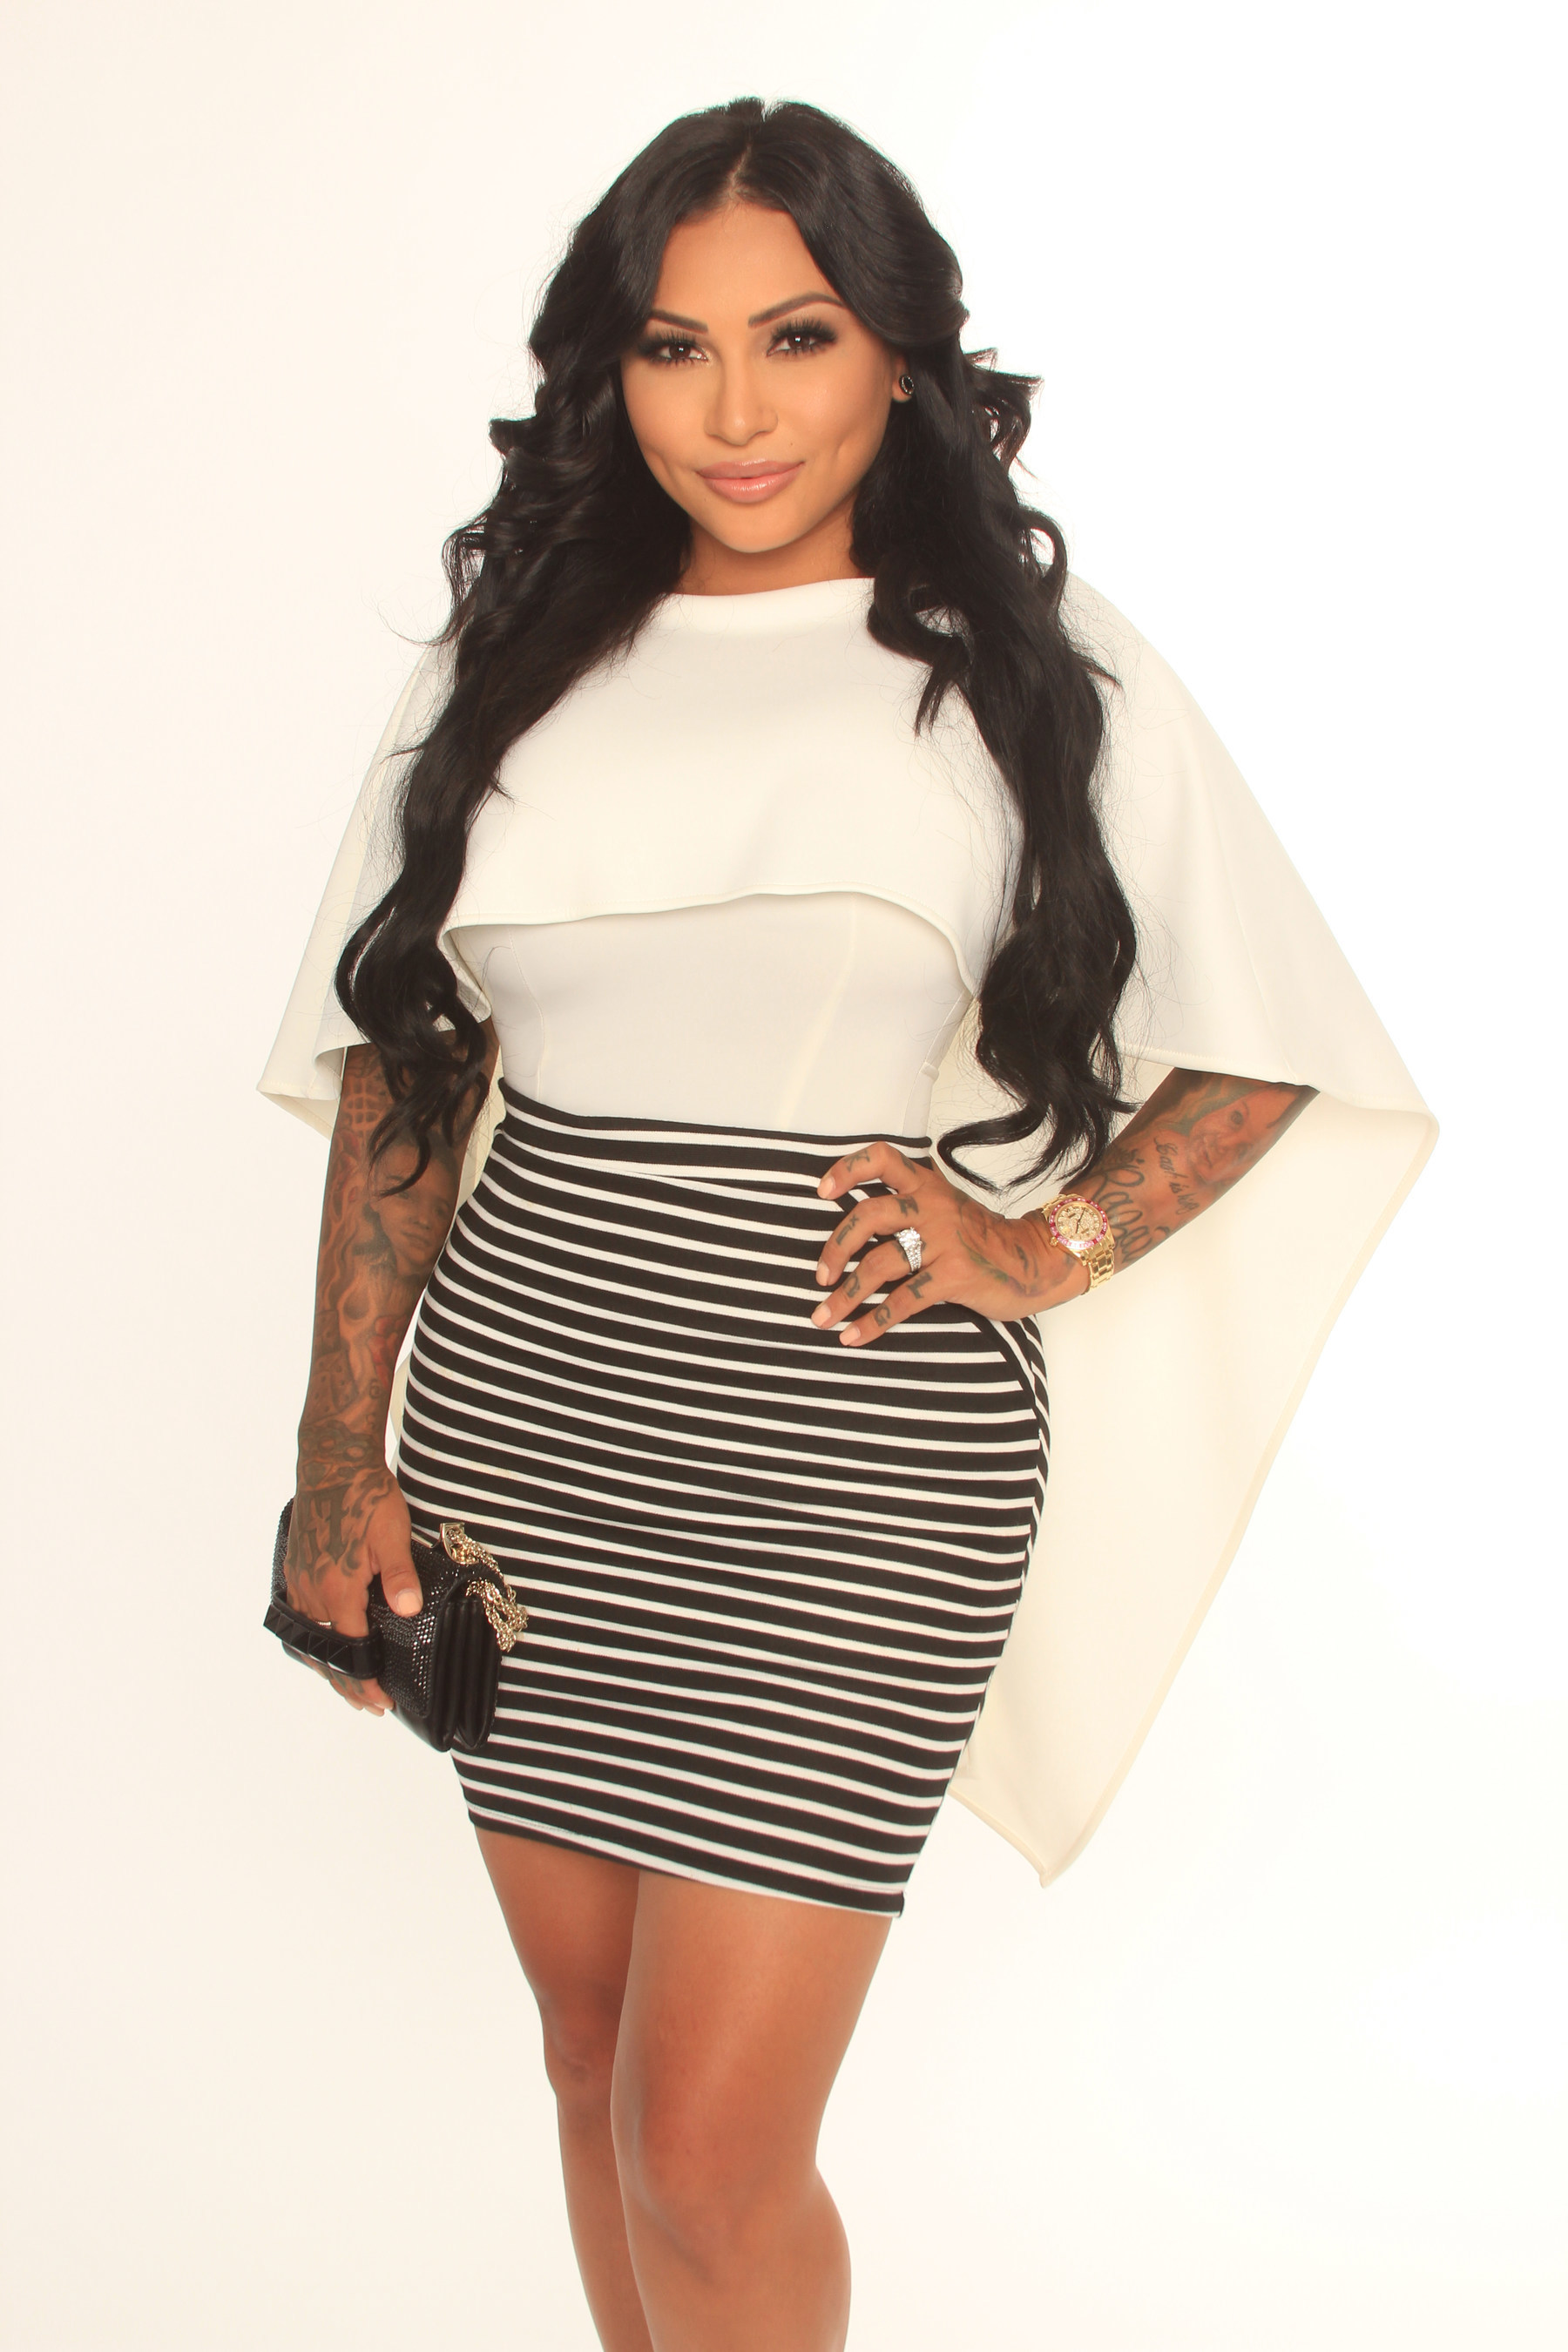 Brittanya Razavi: A new book and a whole lot of street smarts